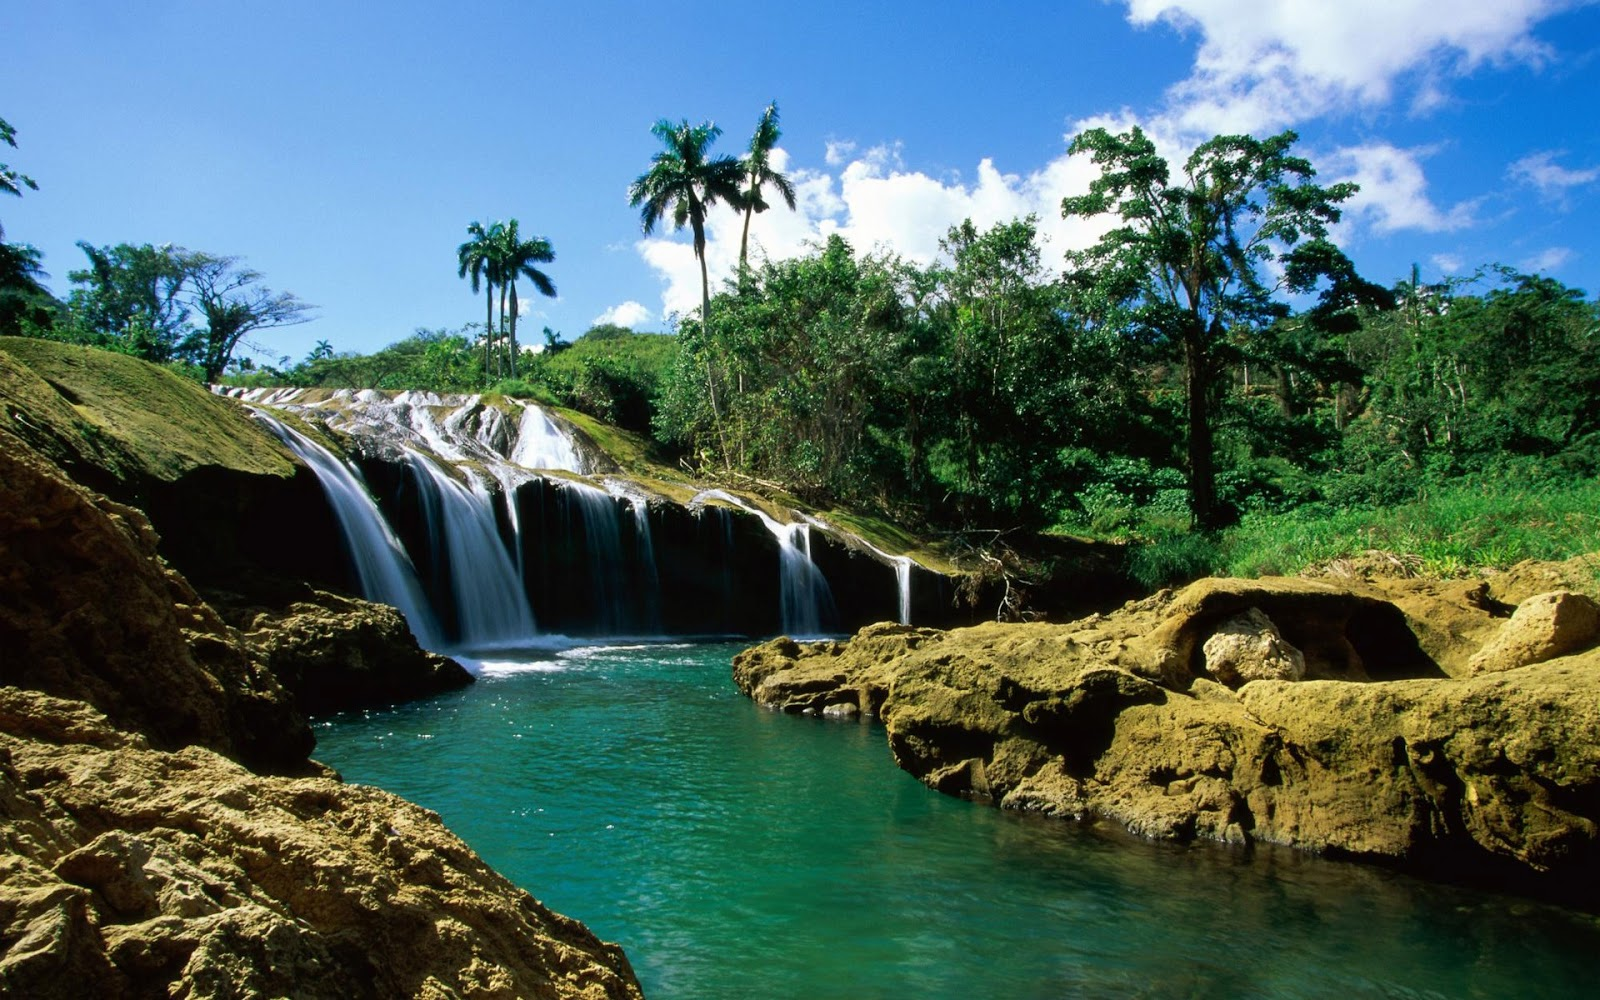 Waterfall Live Wallpaper For Pc Free Download